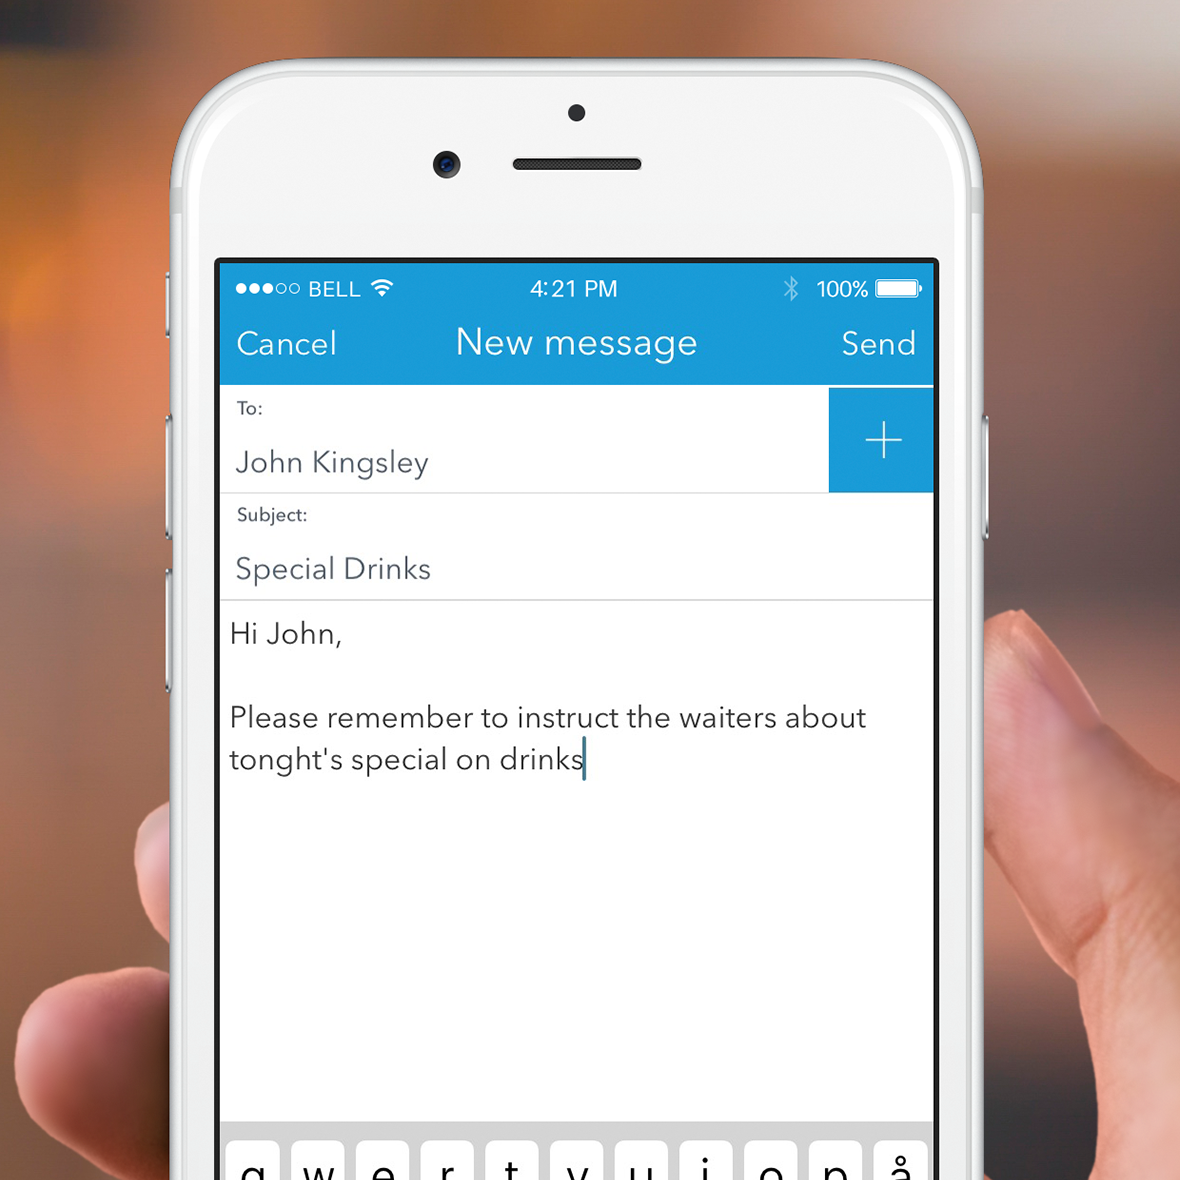 App: Easily communicate with staff